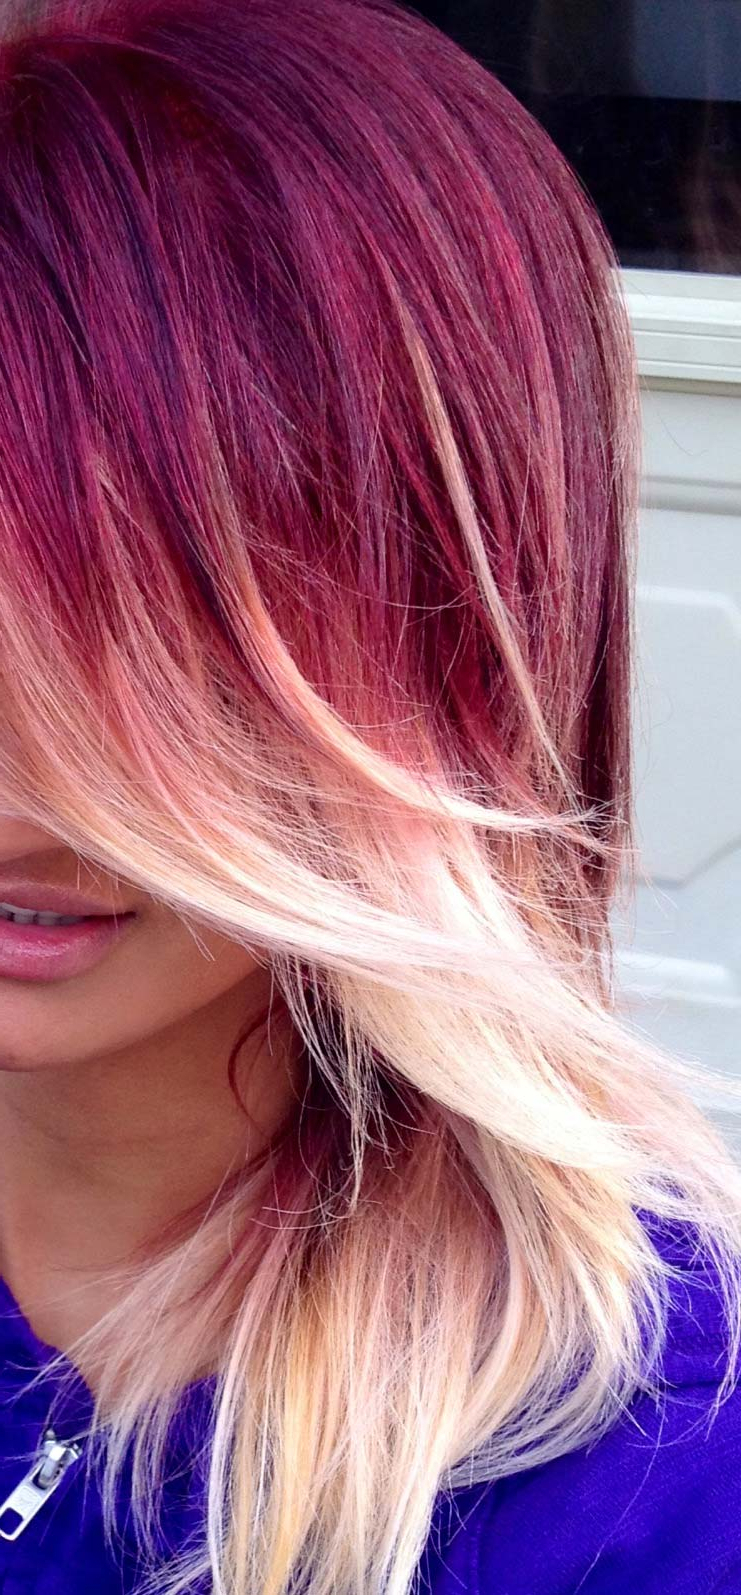 Short Red Ombre Hair | Cool Hairstyles Within Short Haircuts With Red And Blonde Highlights (View 17 of 25)